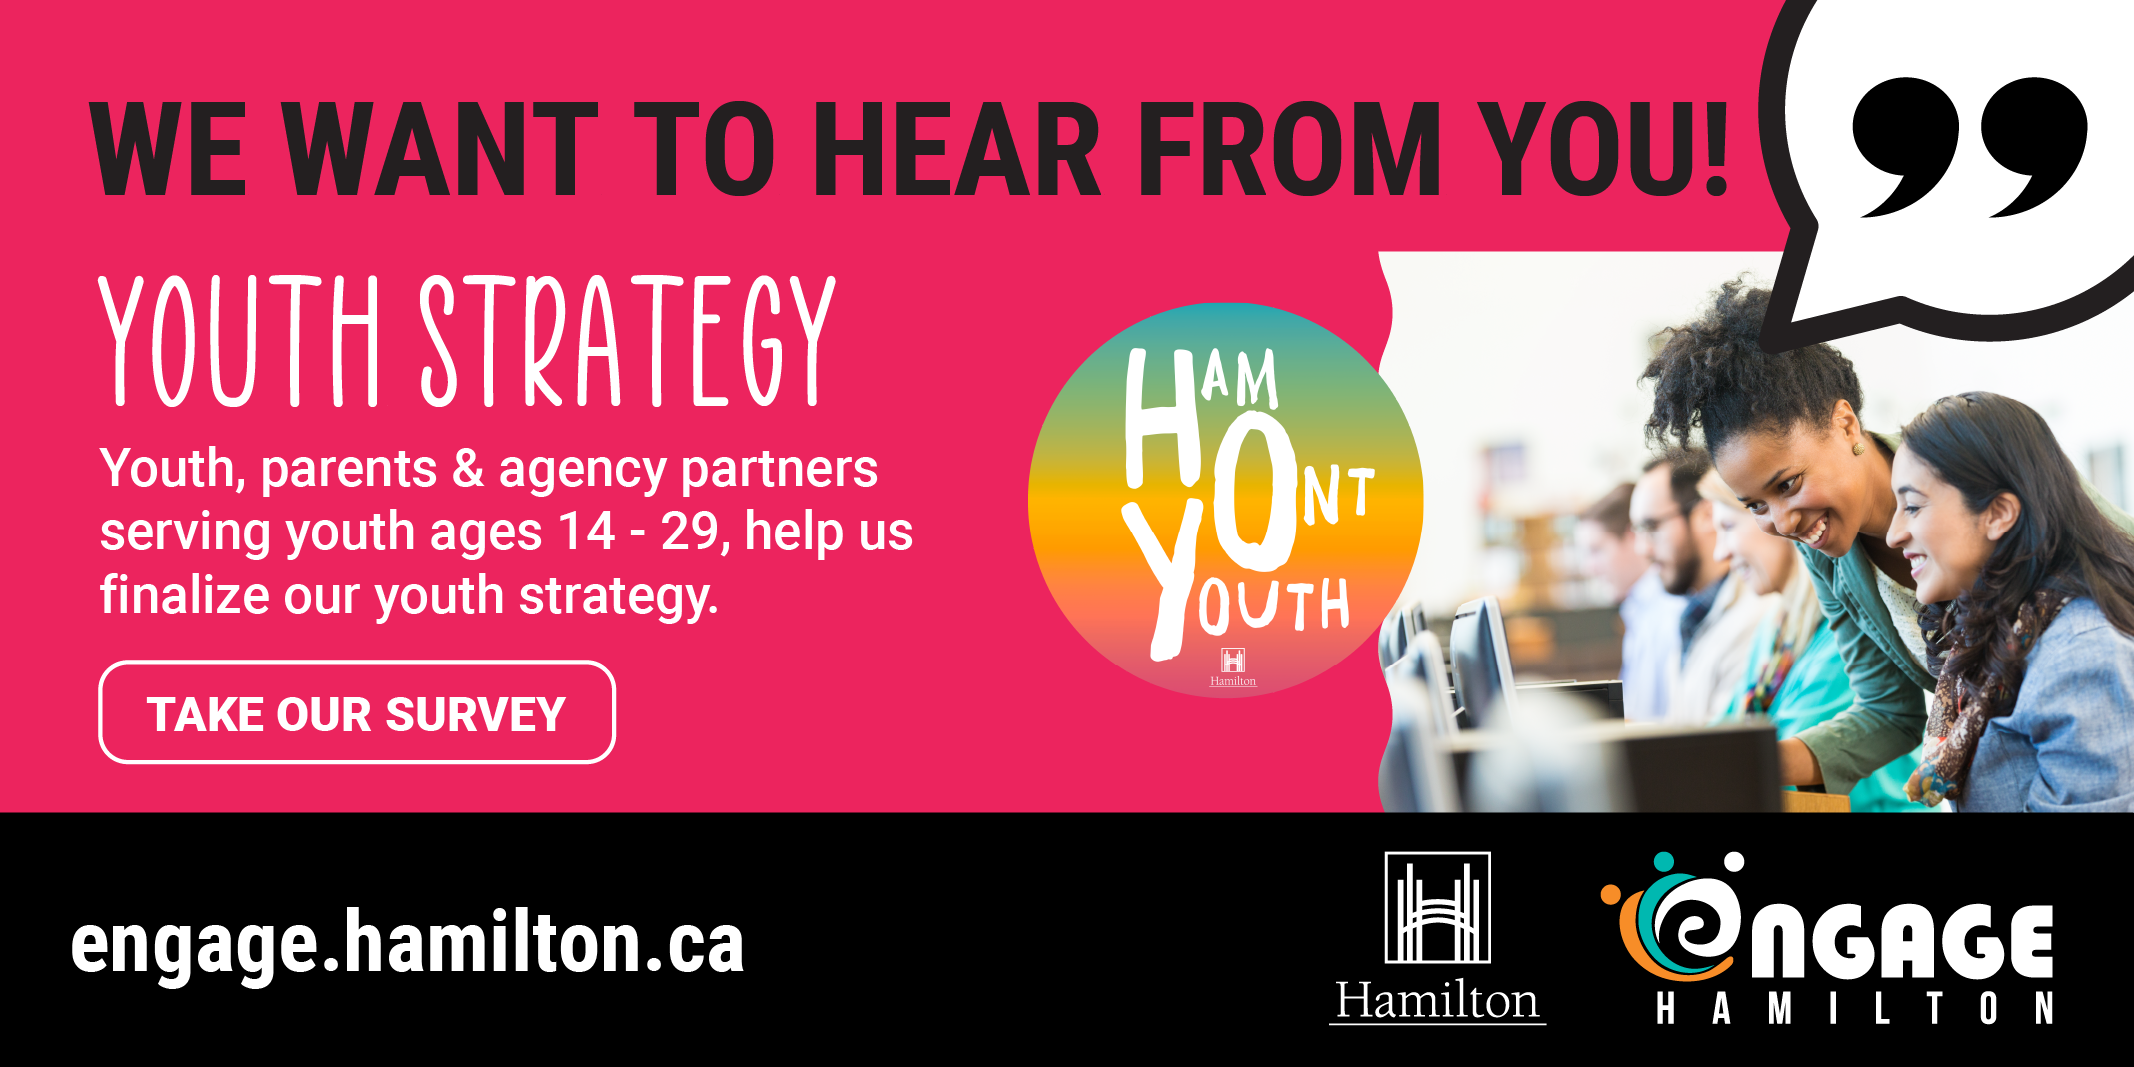 Promotion for Youth Strategy Survey on Engage Hamilton